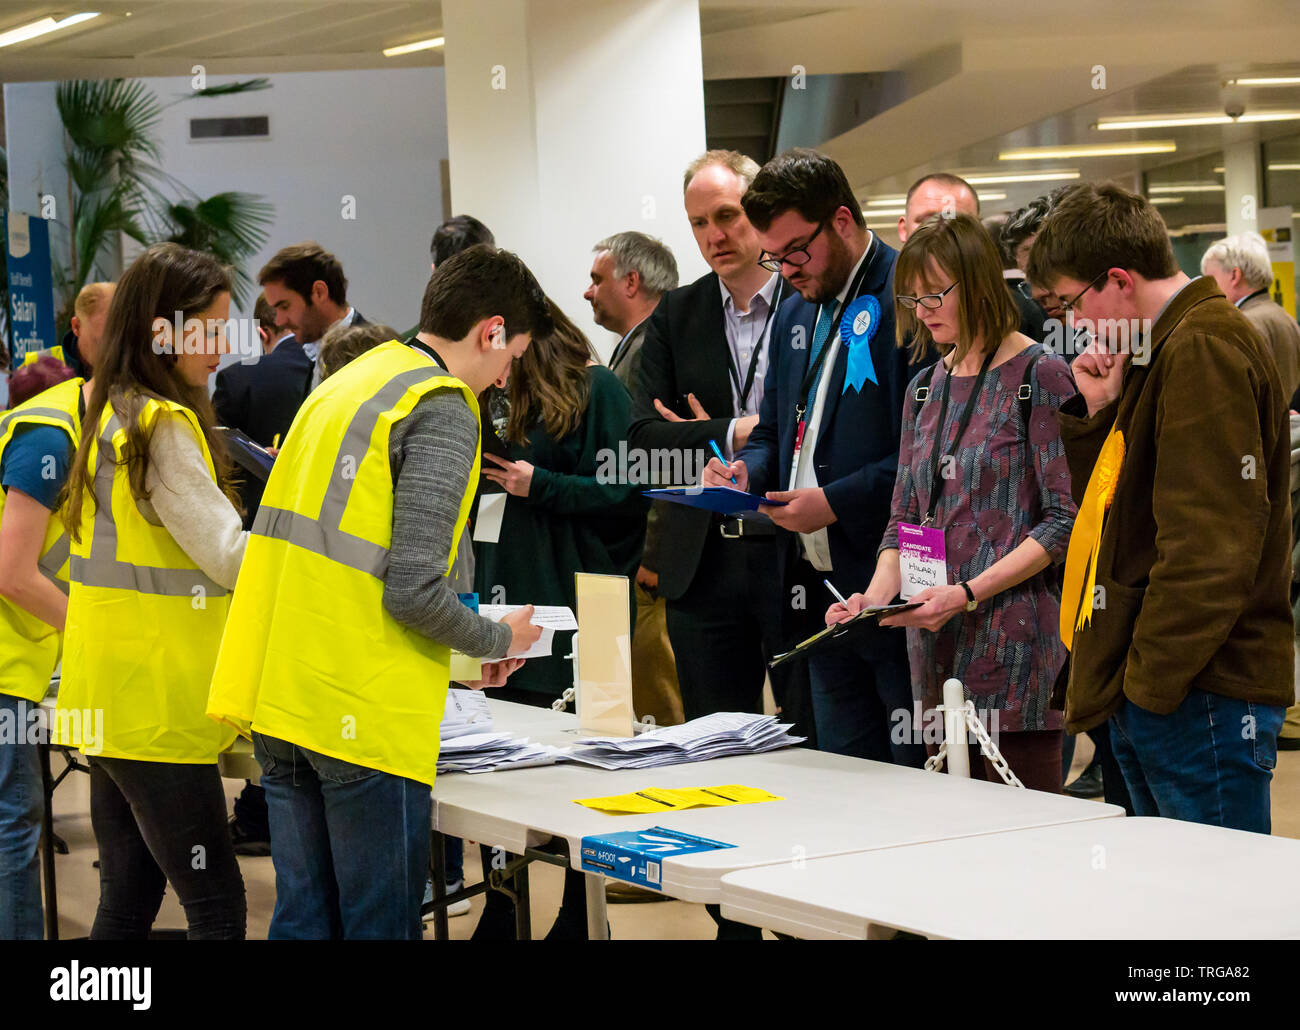 Dan McCroskie, Scottish Conservative party candidate at Leith Walk by-election count at Edinburgh City Council, Edinburgh, Scotland, UK - Stock Image